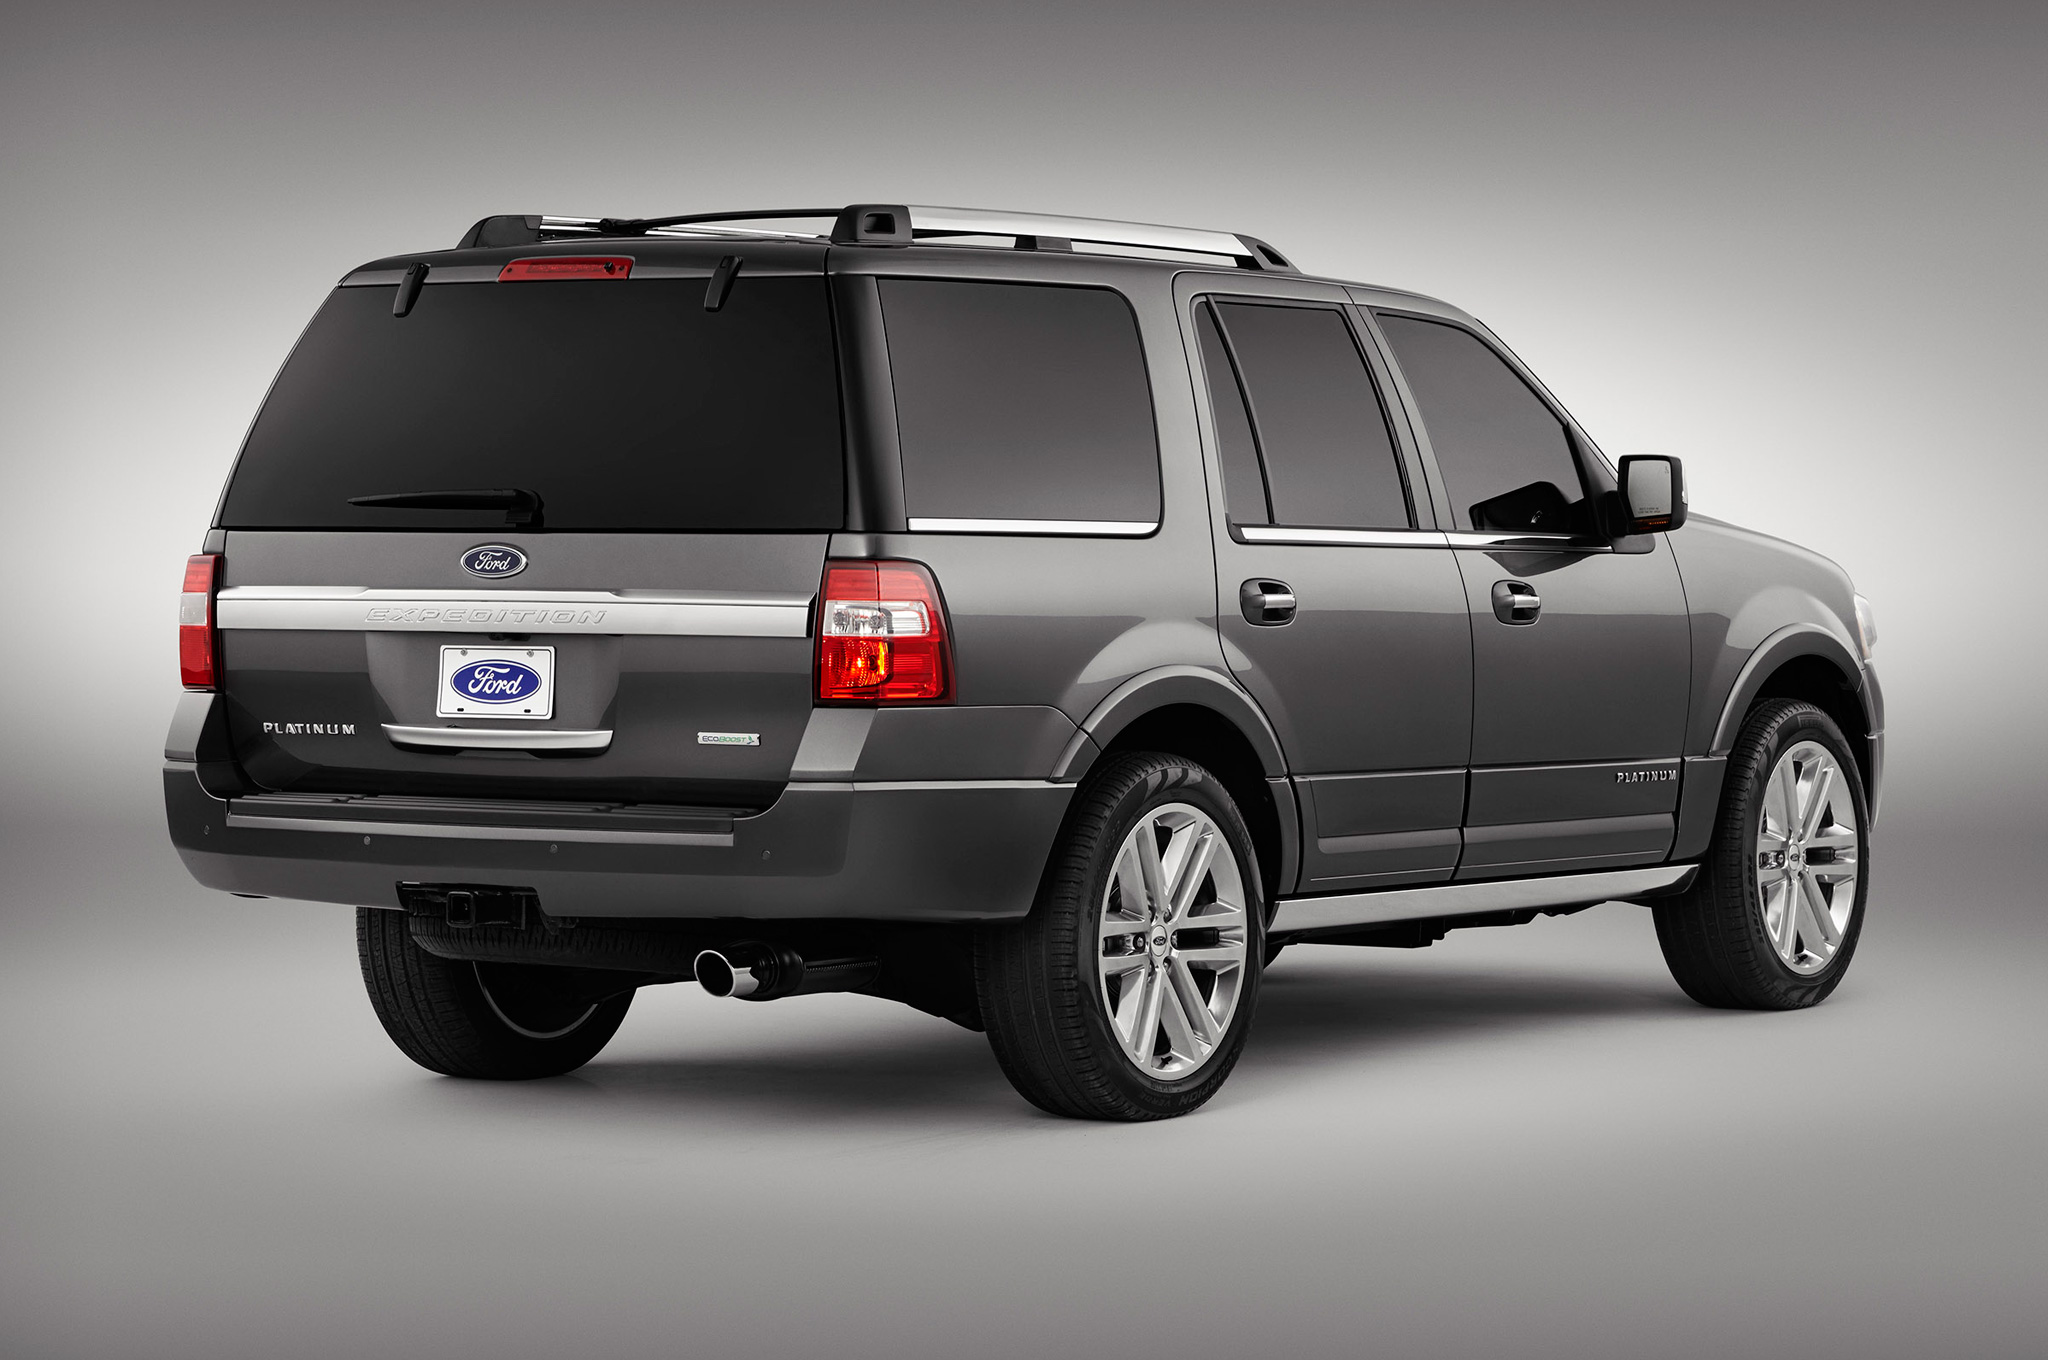 2015 Ford Expedition Rear Exterior (Photo 5 of 6)